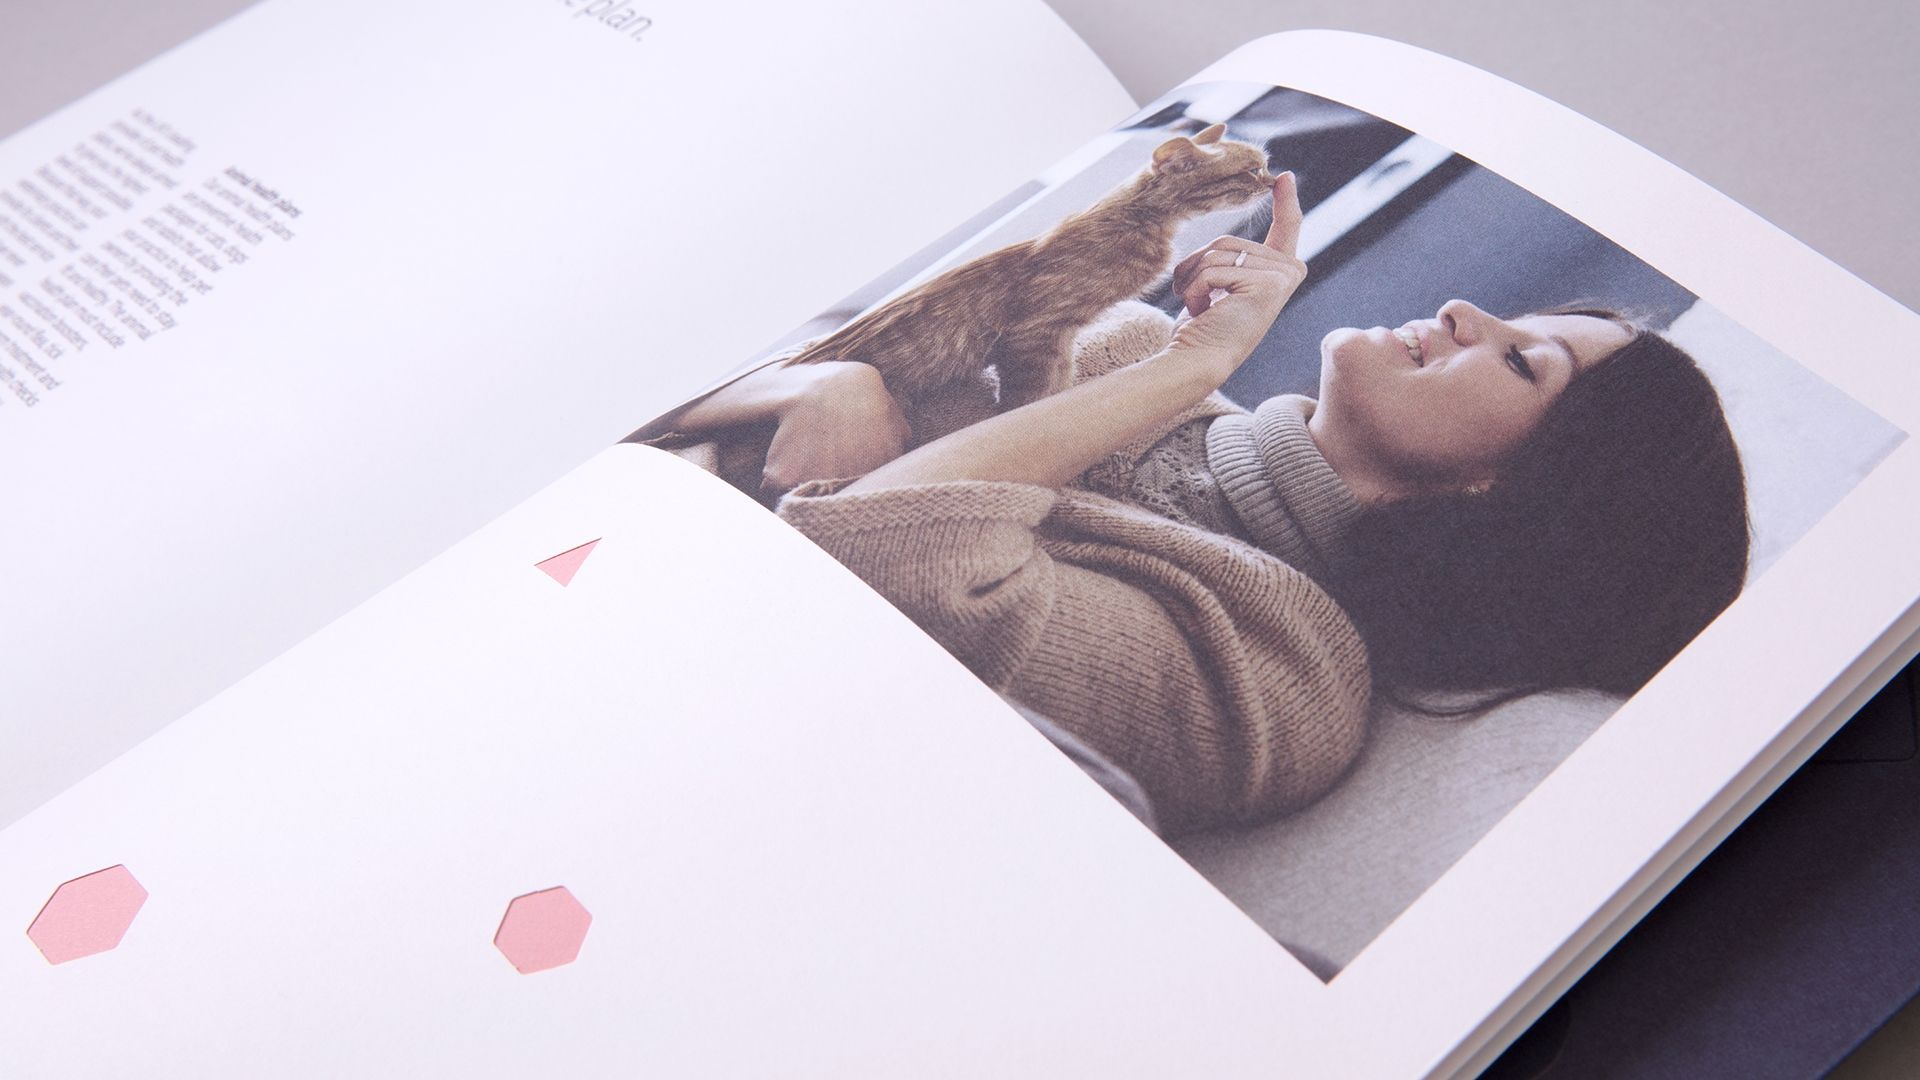 Simplyhealth Professionals Brochure Design showing Die-Cut Details and Art Directed Photography